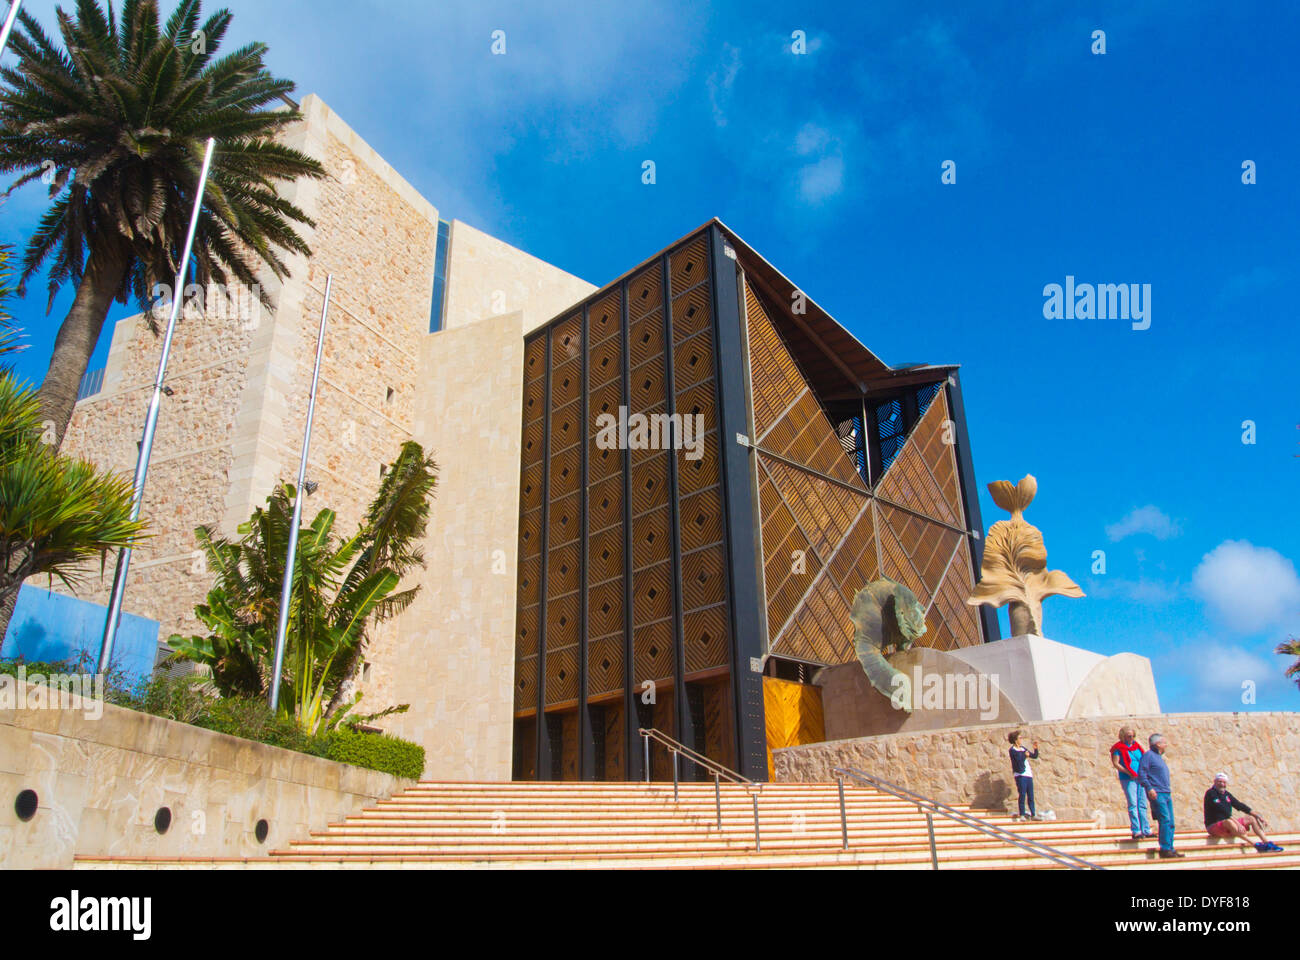 Auditorio alfredo kraus concert hall las palmas de gran canaria stock photo 68562404 alamy - Alfredo kraus auditorio ...